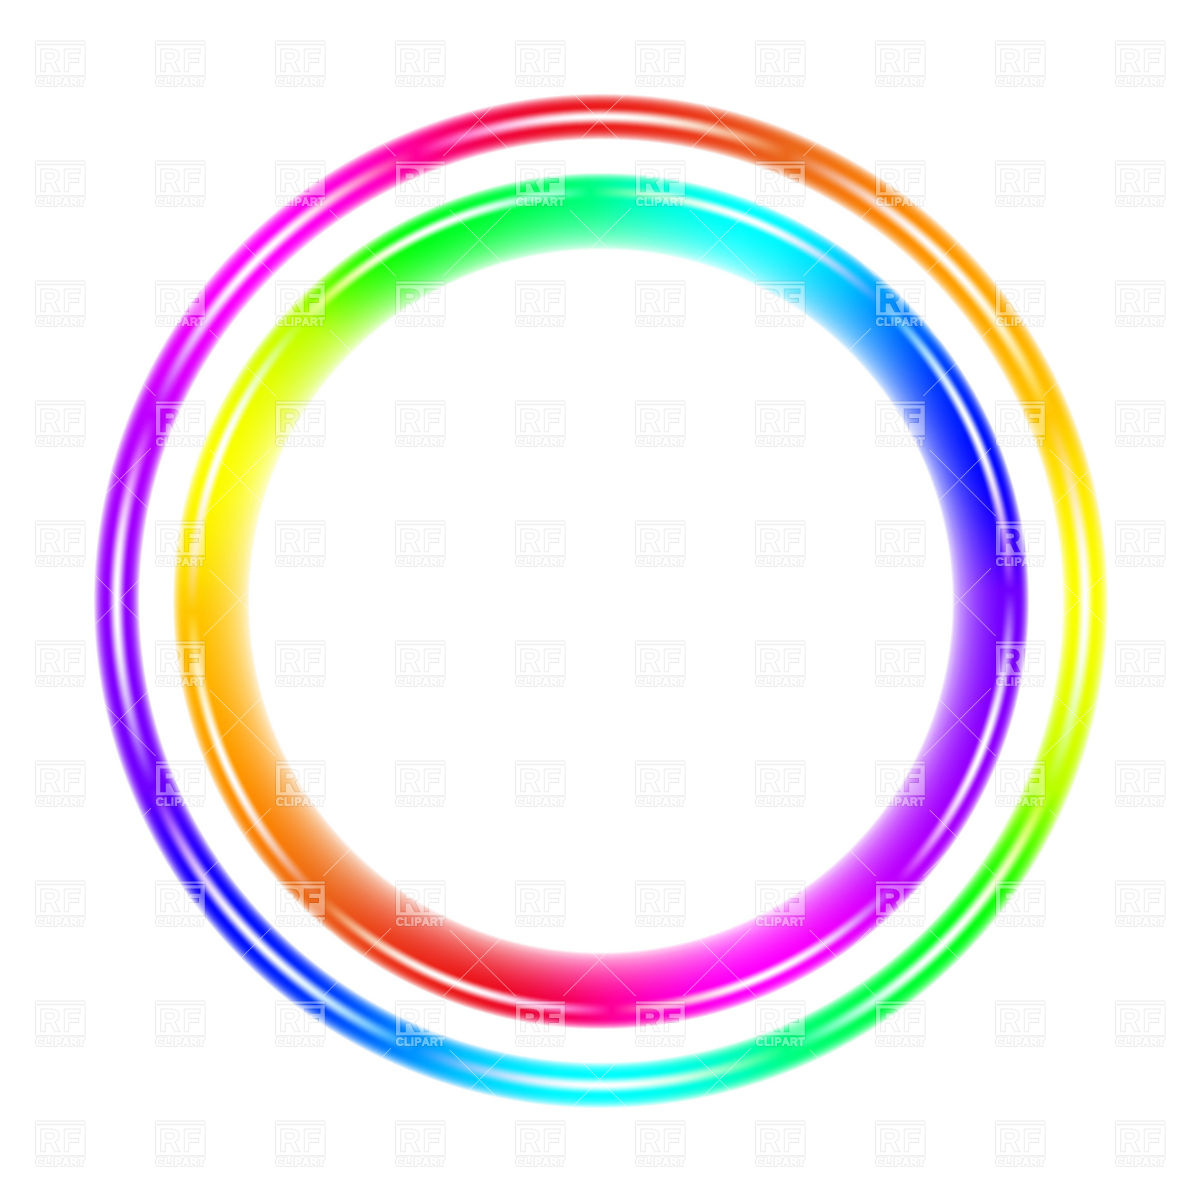 Swell Color Wheel Clipart At Getdrawings Com Free For Personal Interior Design Ideas Tzicisoteloinfo